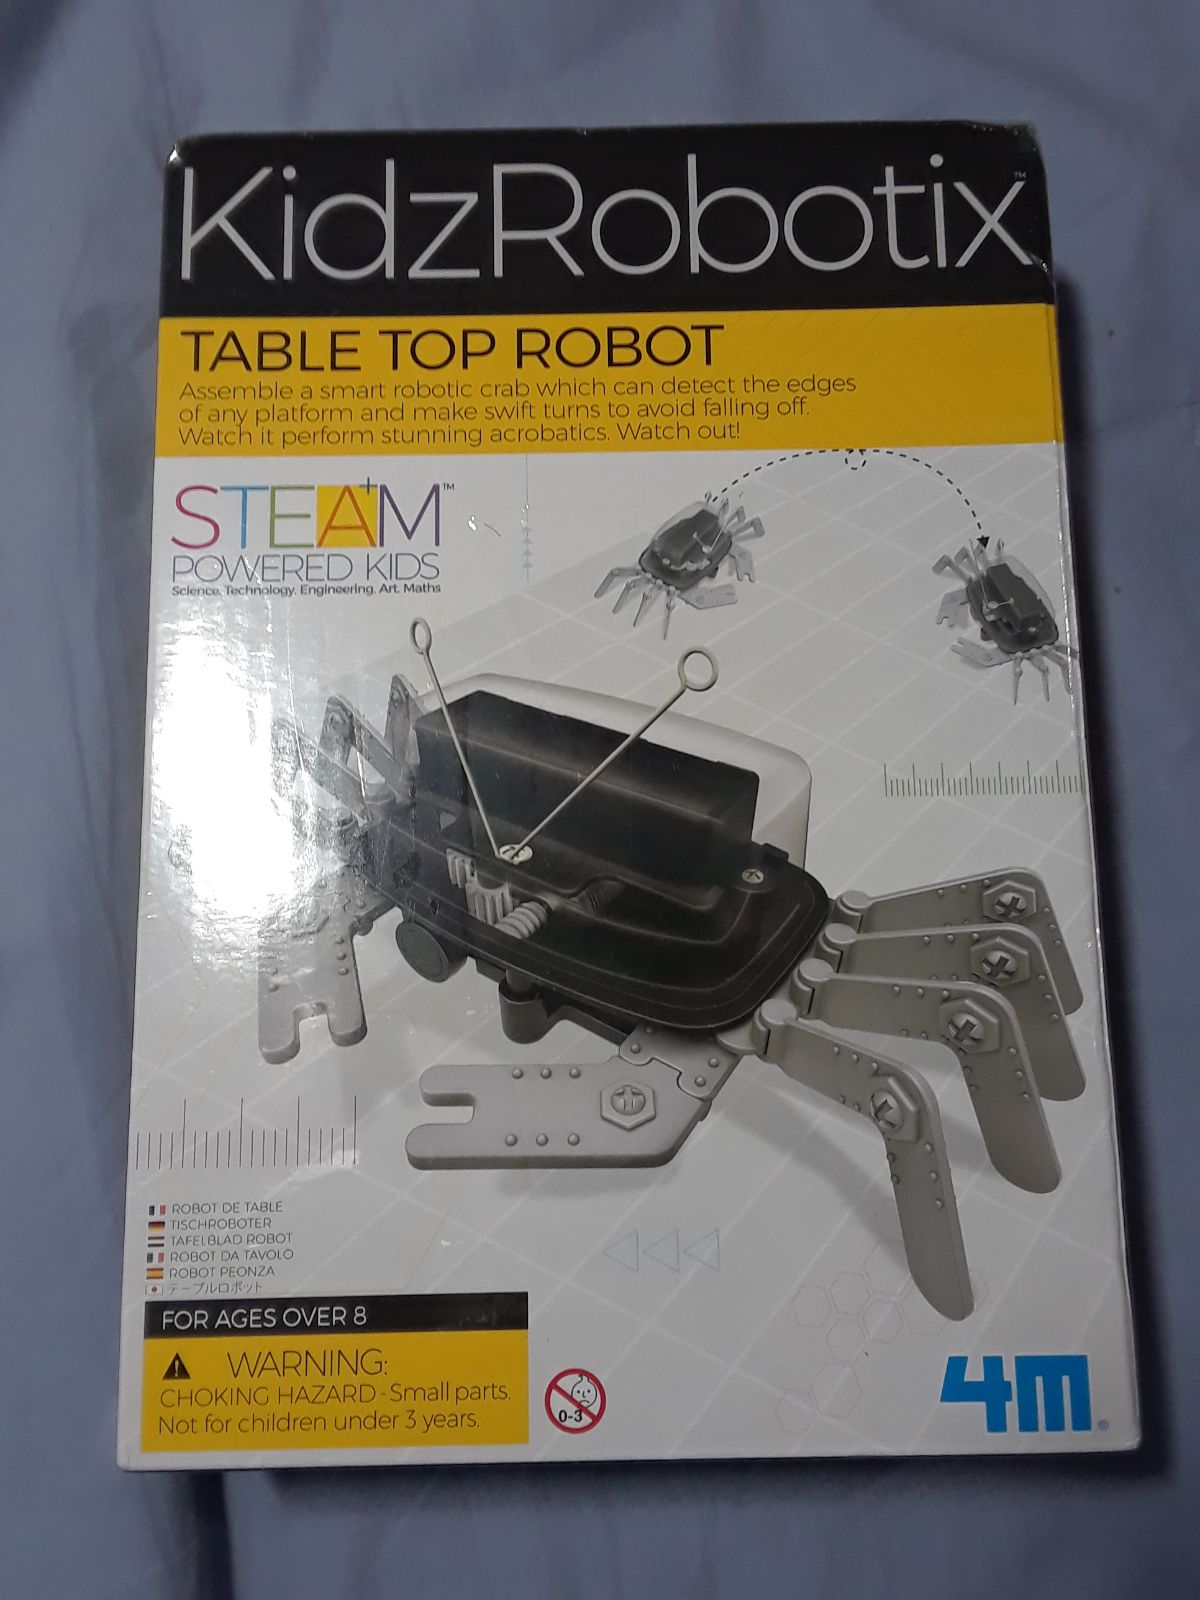 KIDZROBOTIX, TABLE TOP ROBOT KIT. SMART